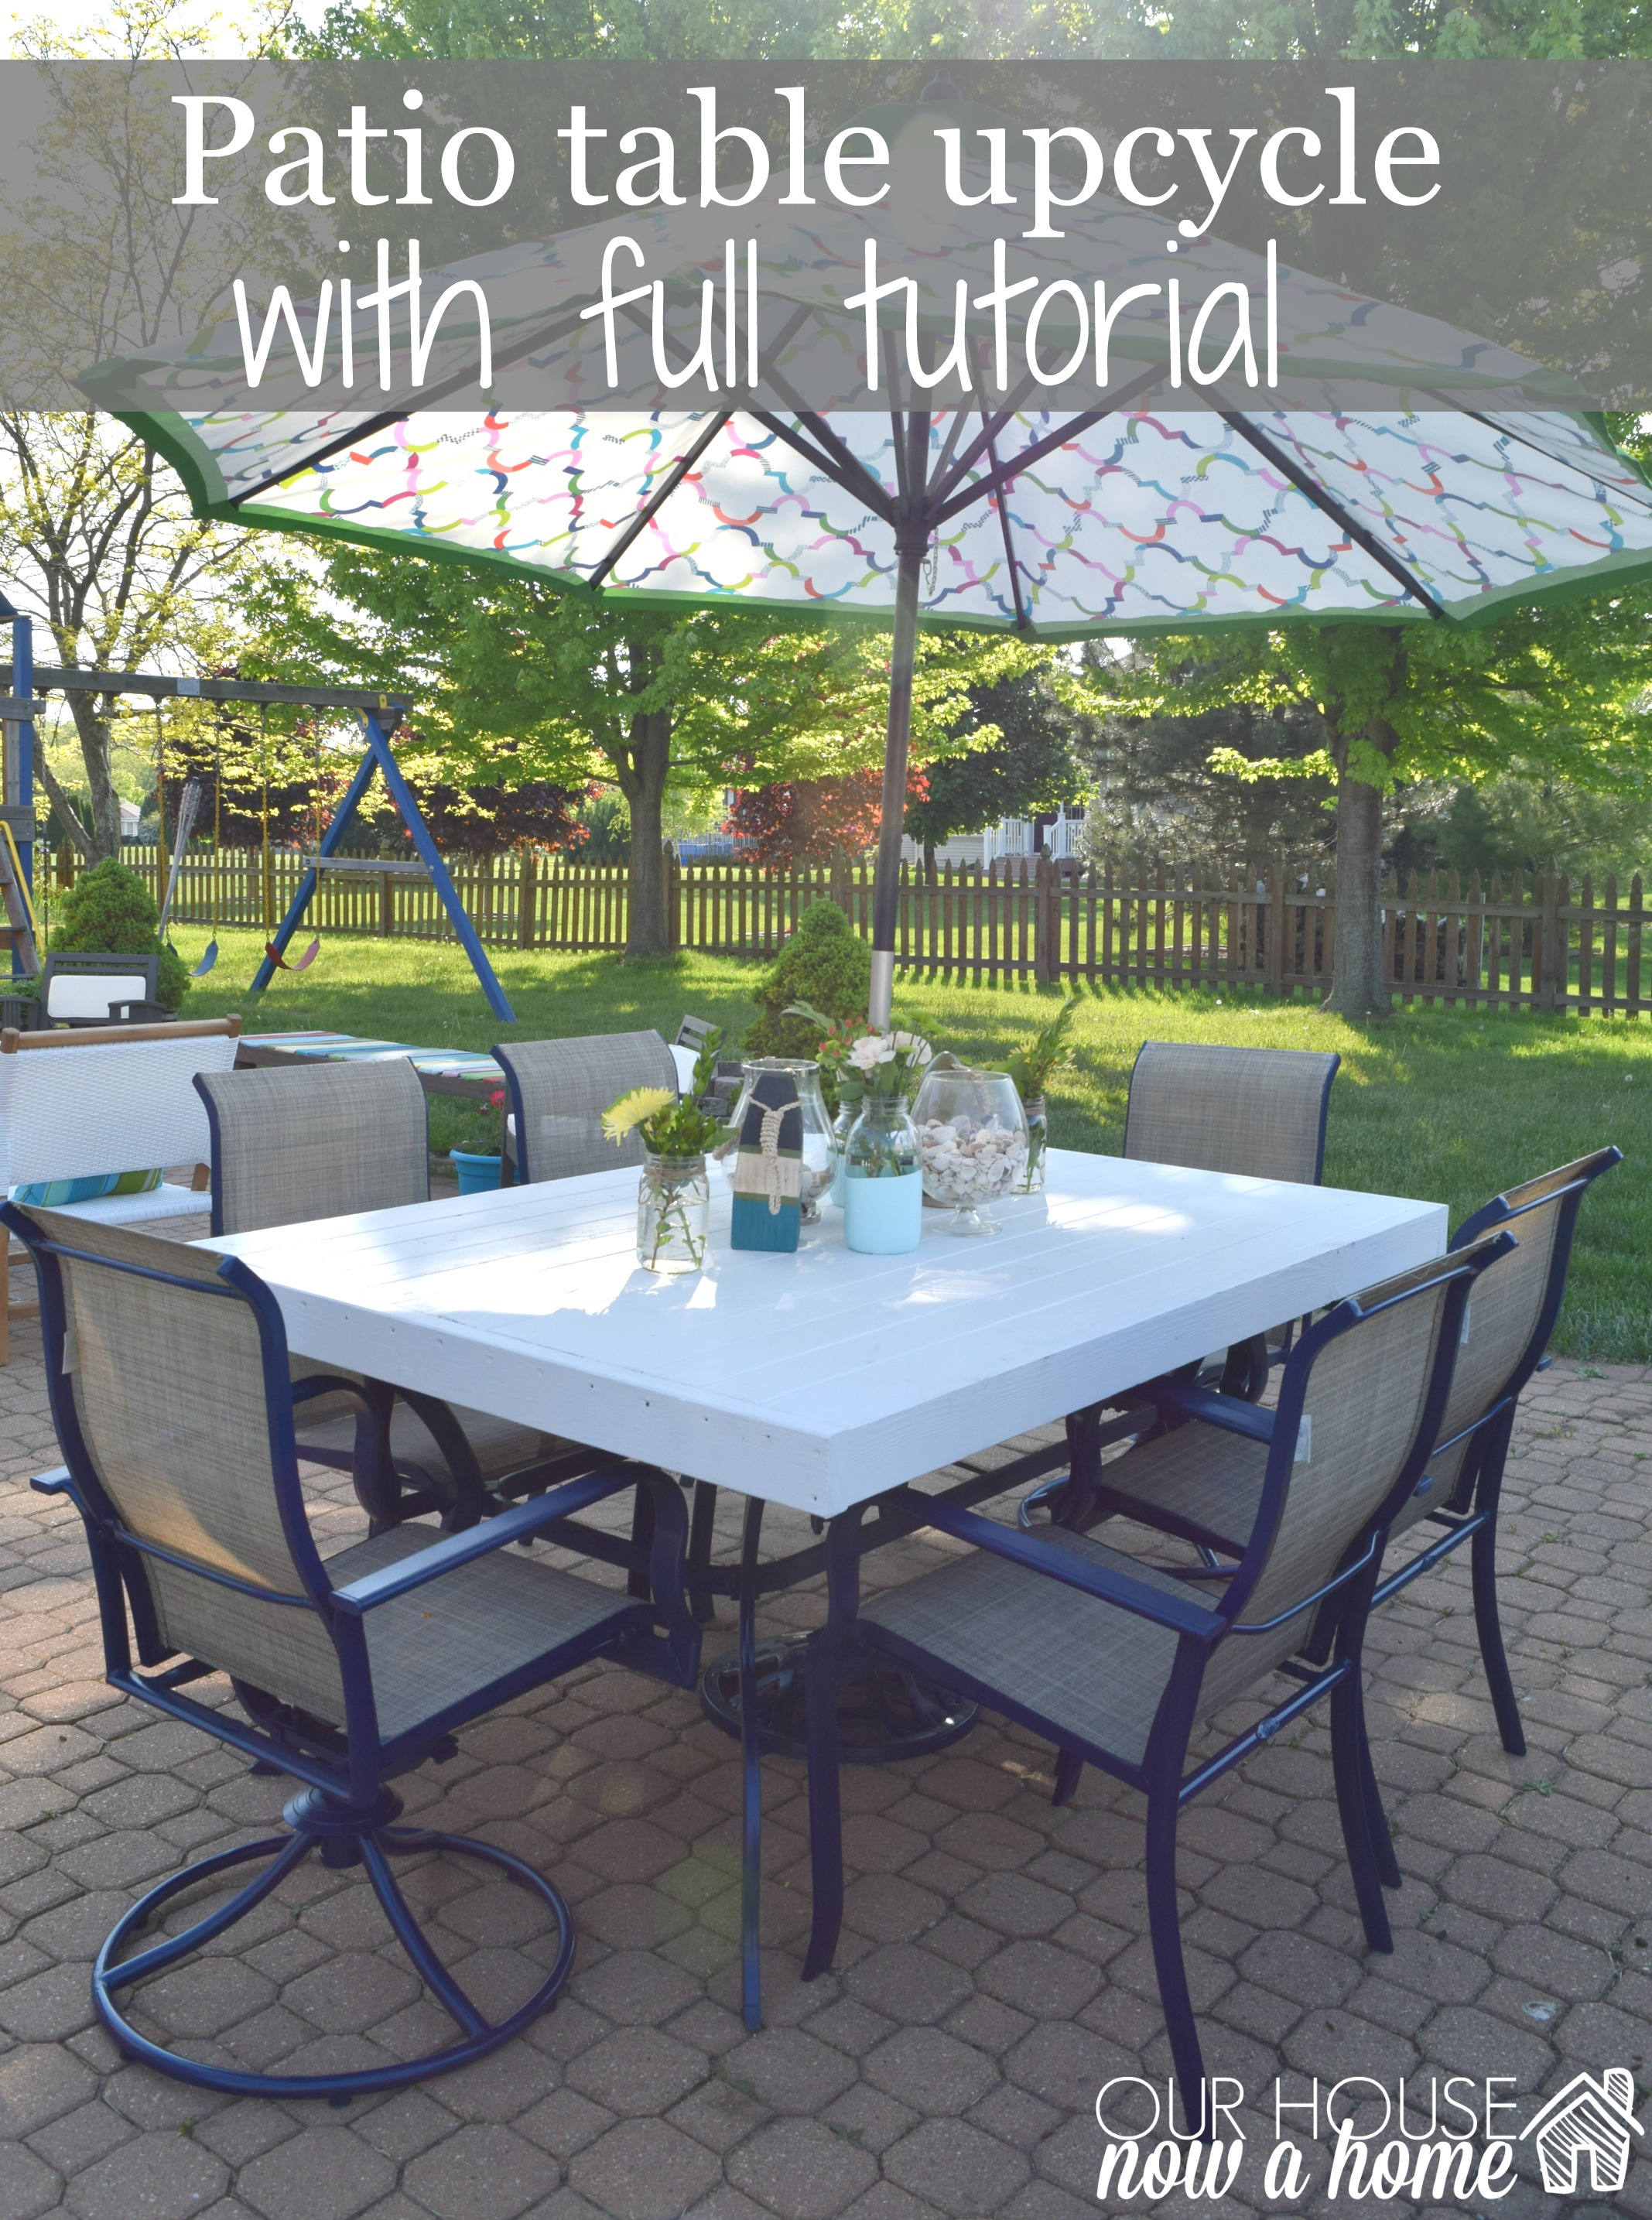 patio table upcycle low cost and simple to redo u2022 our house now a home rh ourhousenowahome com low price patio chairs low price patio chairs